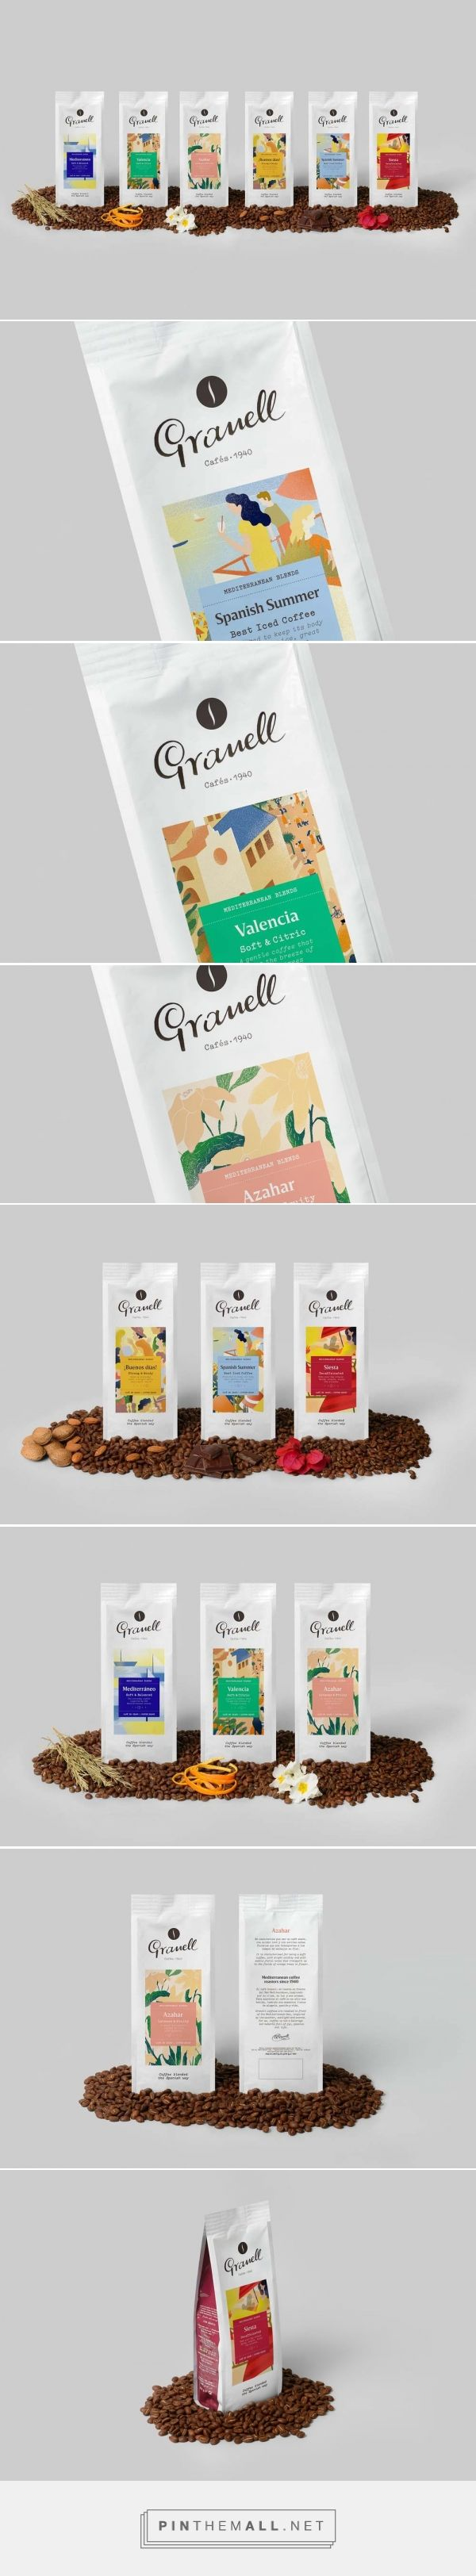 Granell Mediterranean Blends coffee by Firma PD